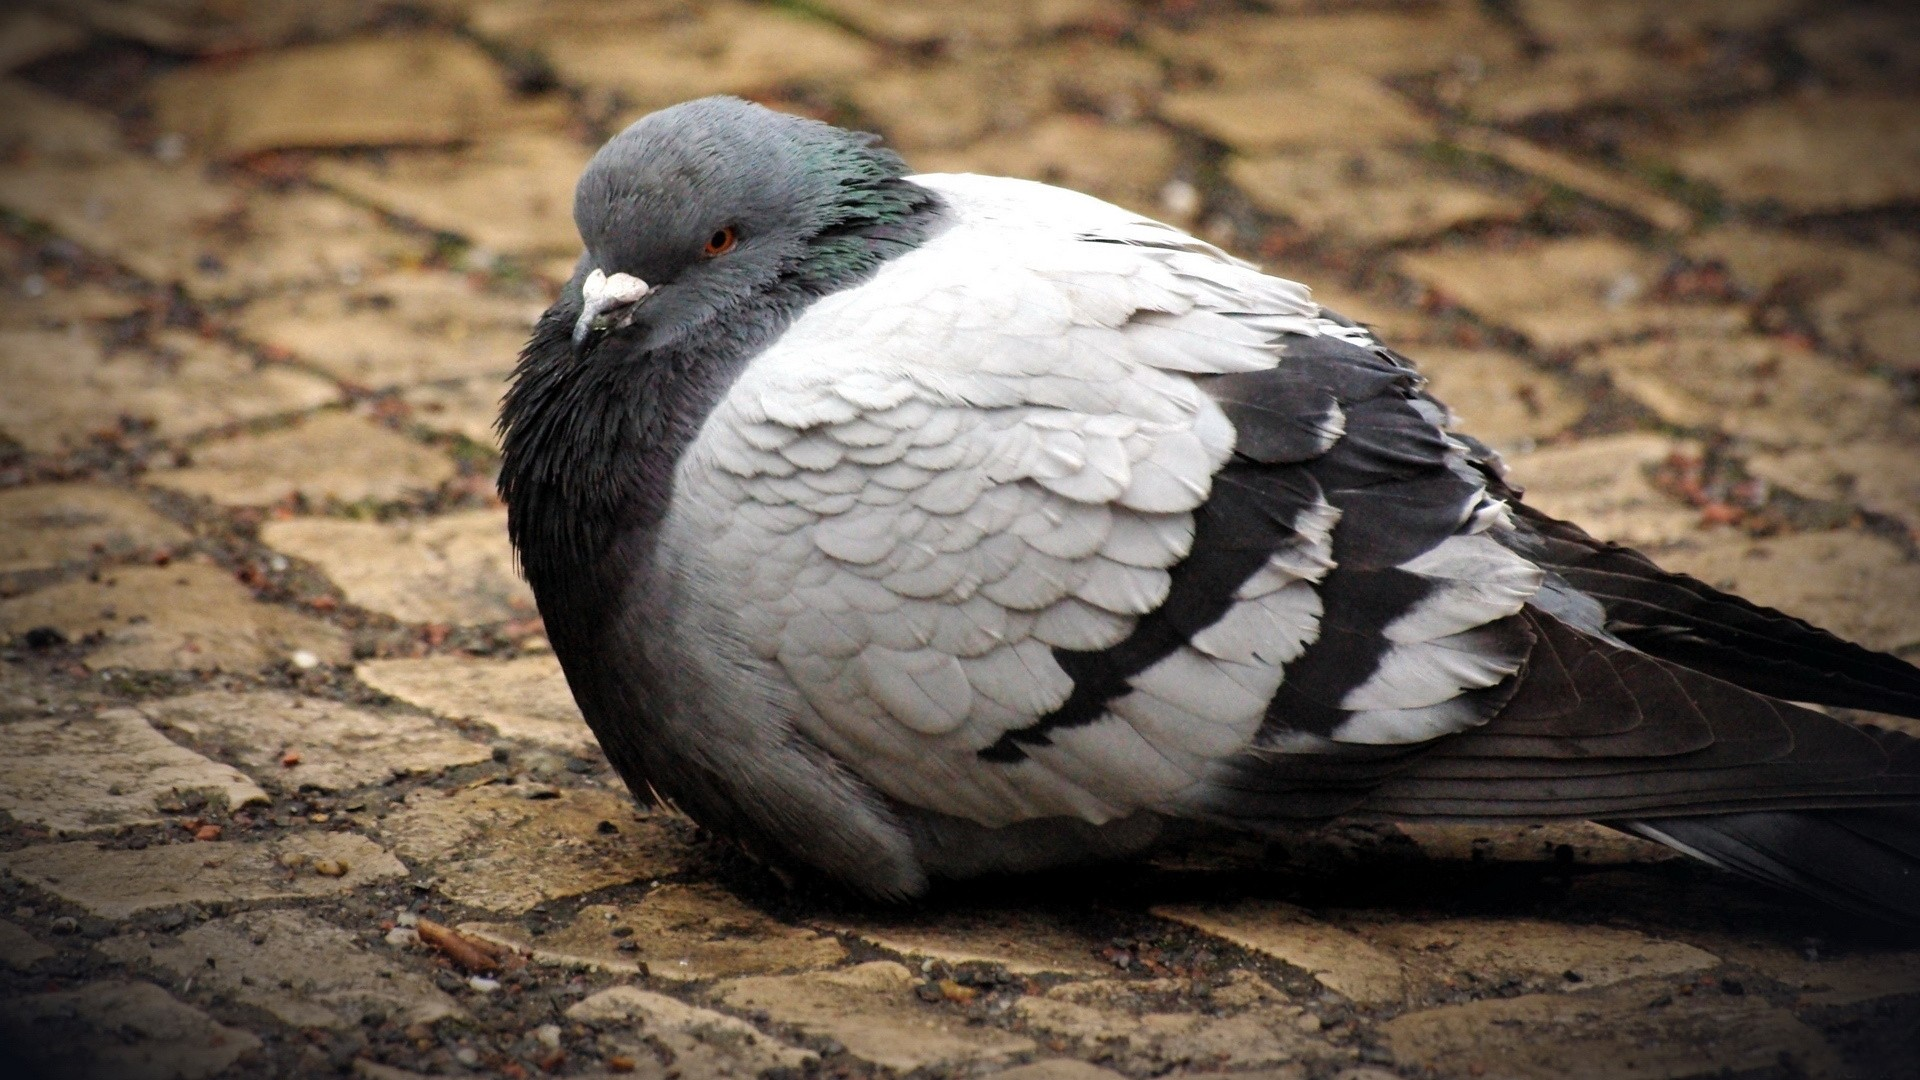 1920x1080 pigeon wallpapers for computer